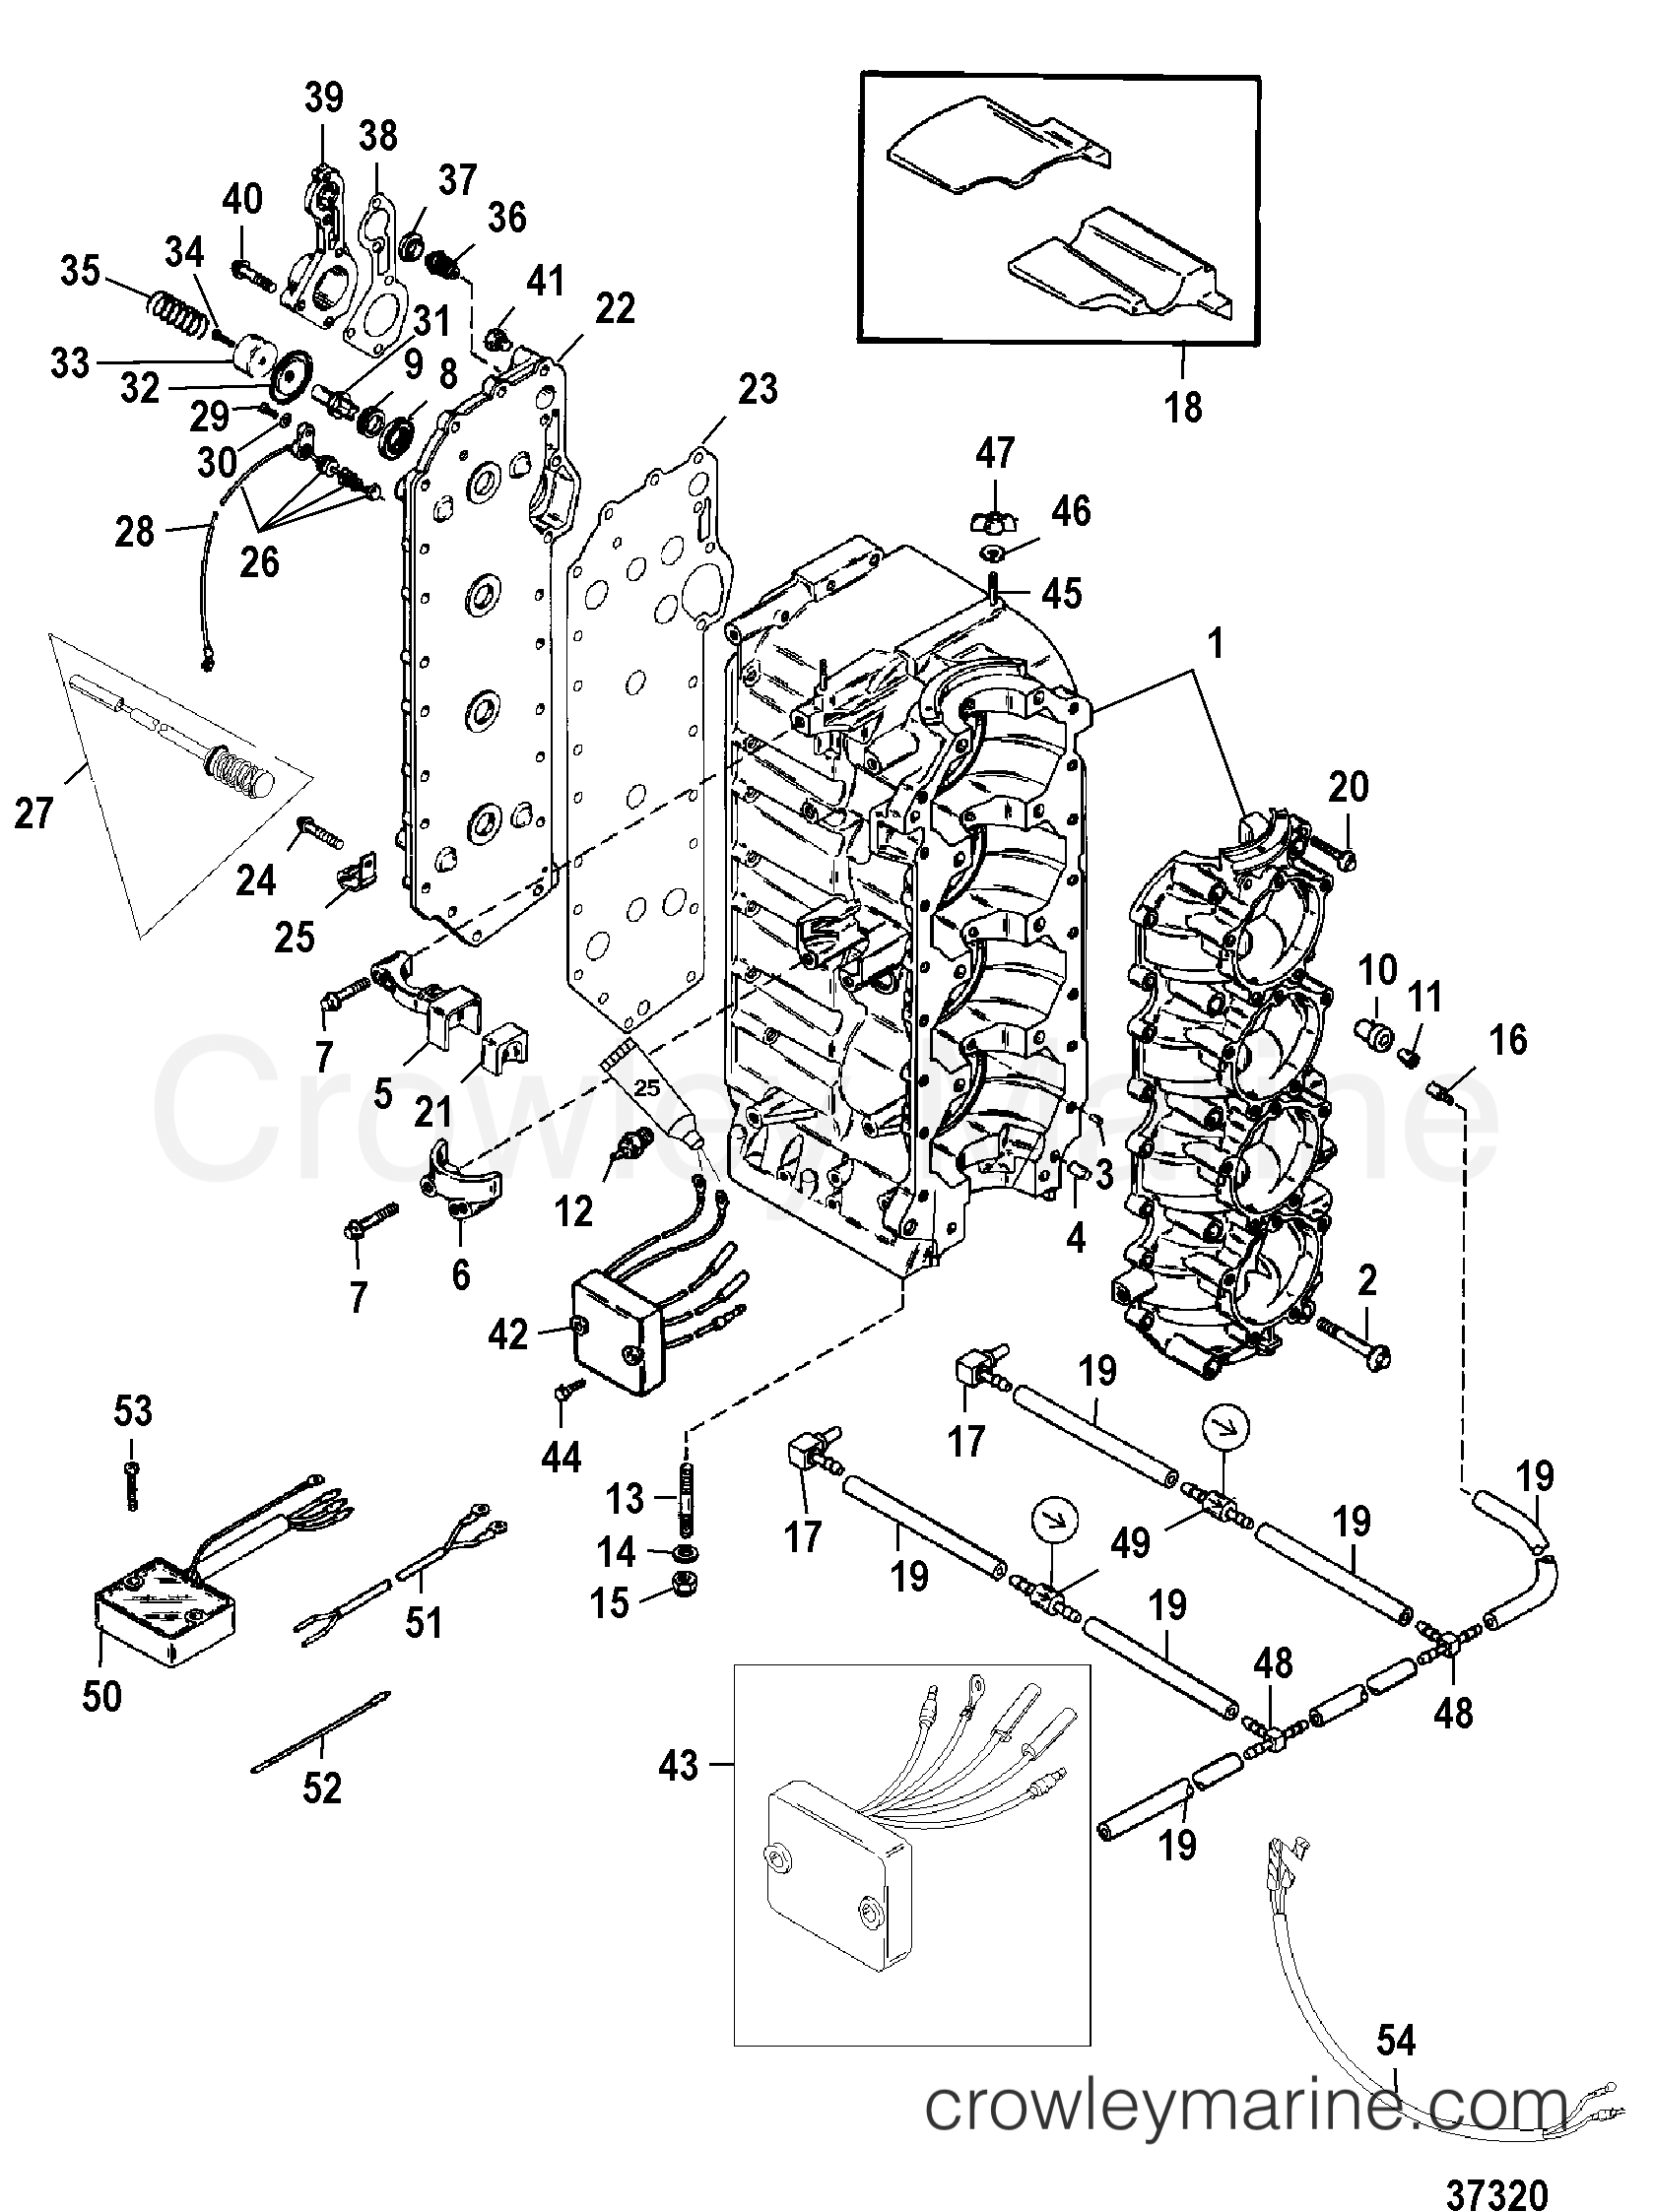 Cylinder Block And Crankcase